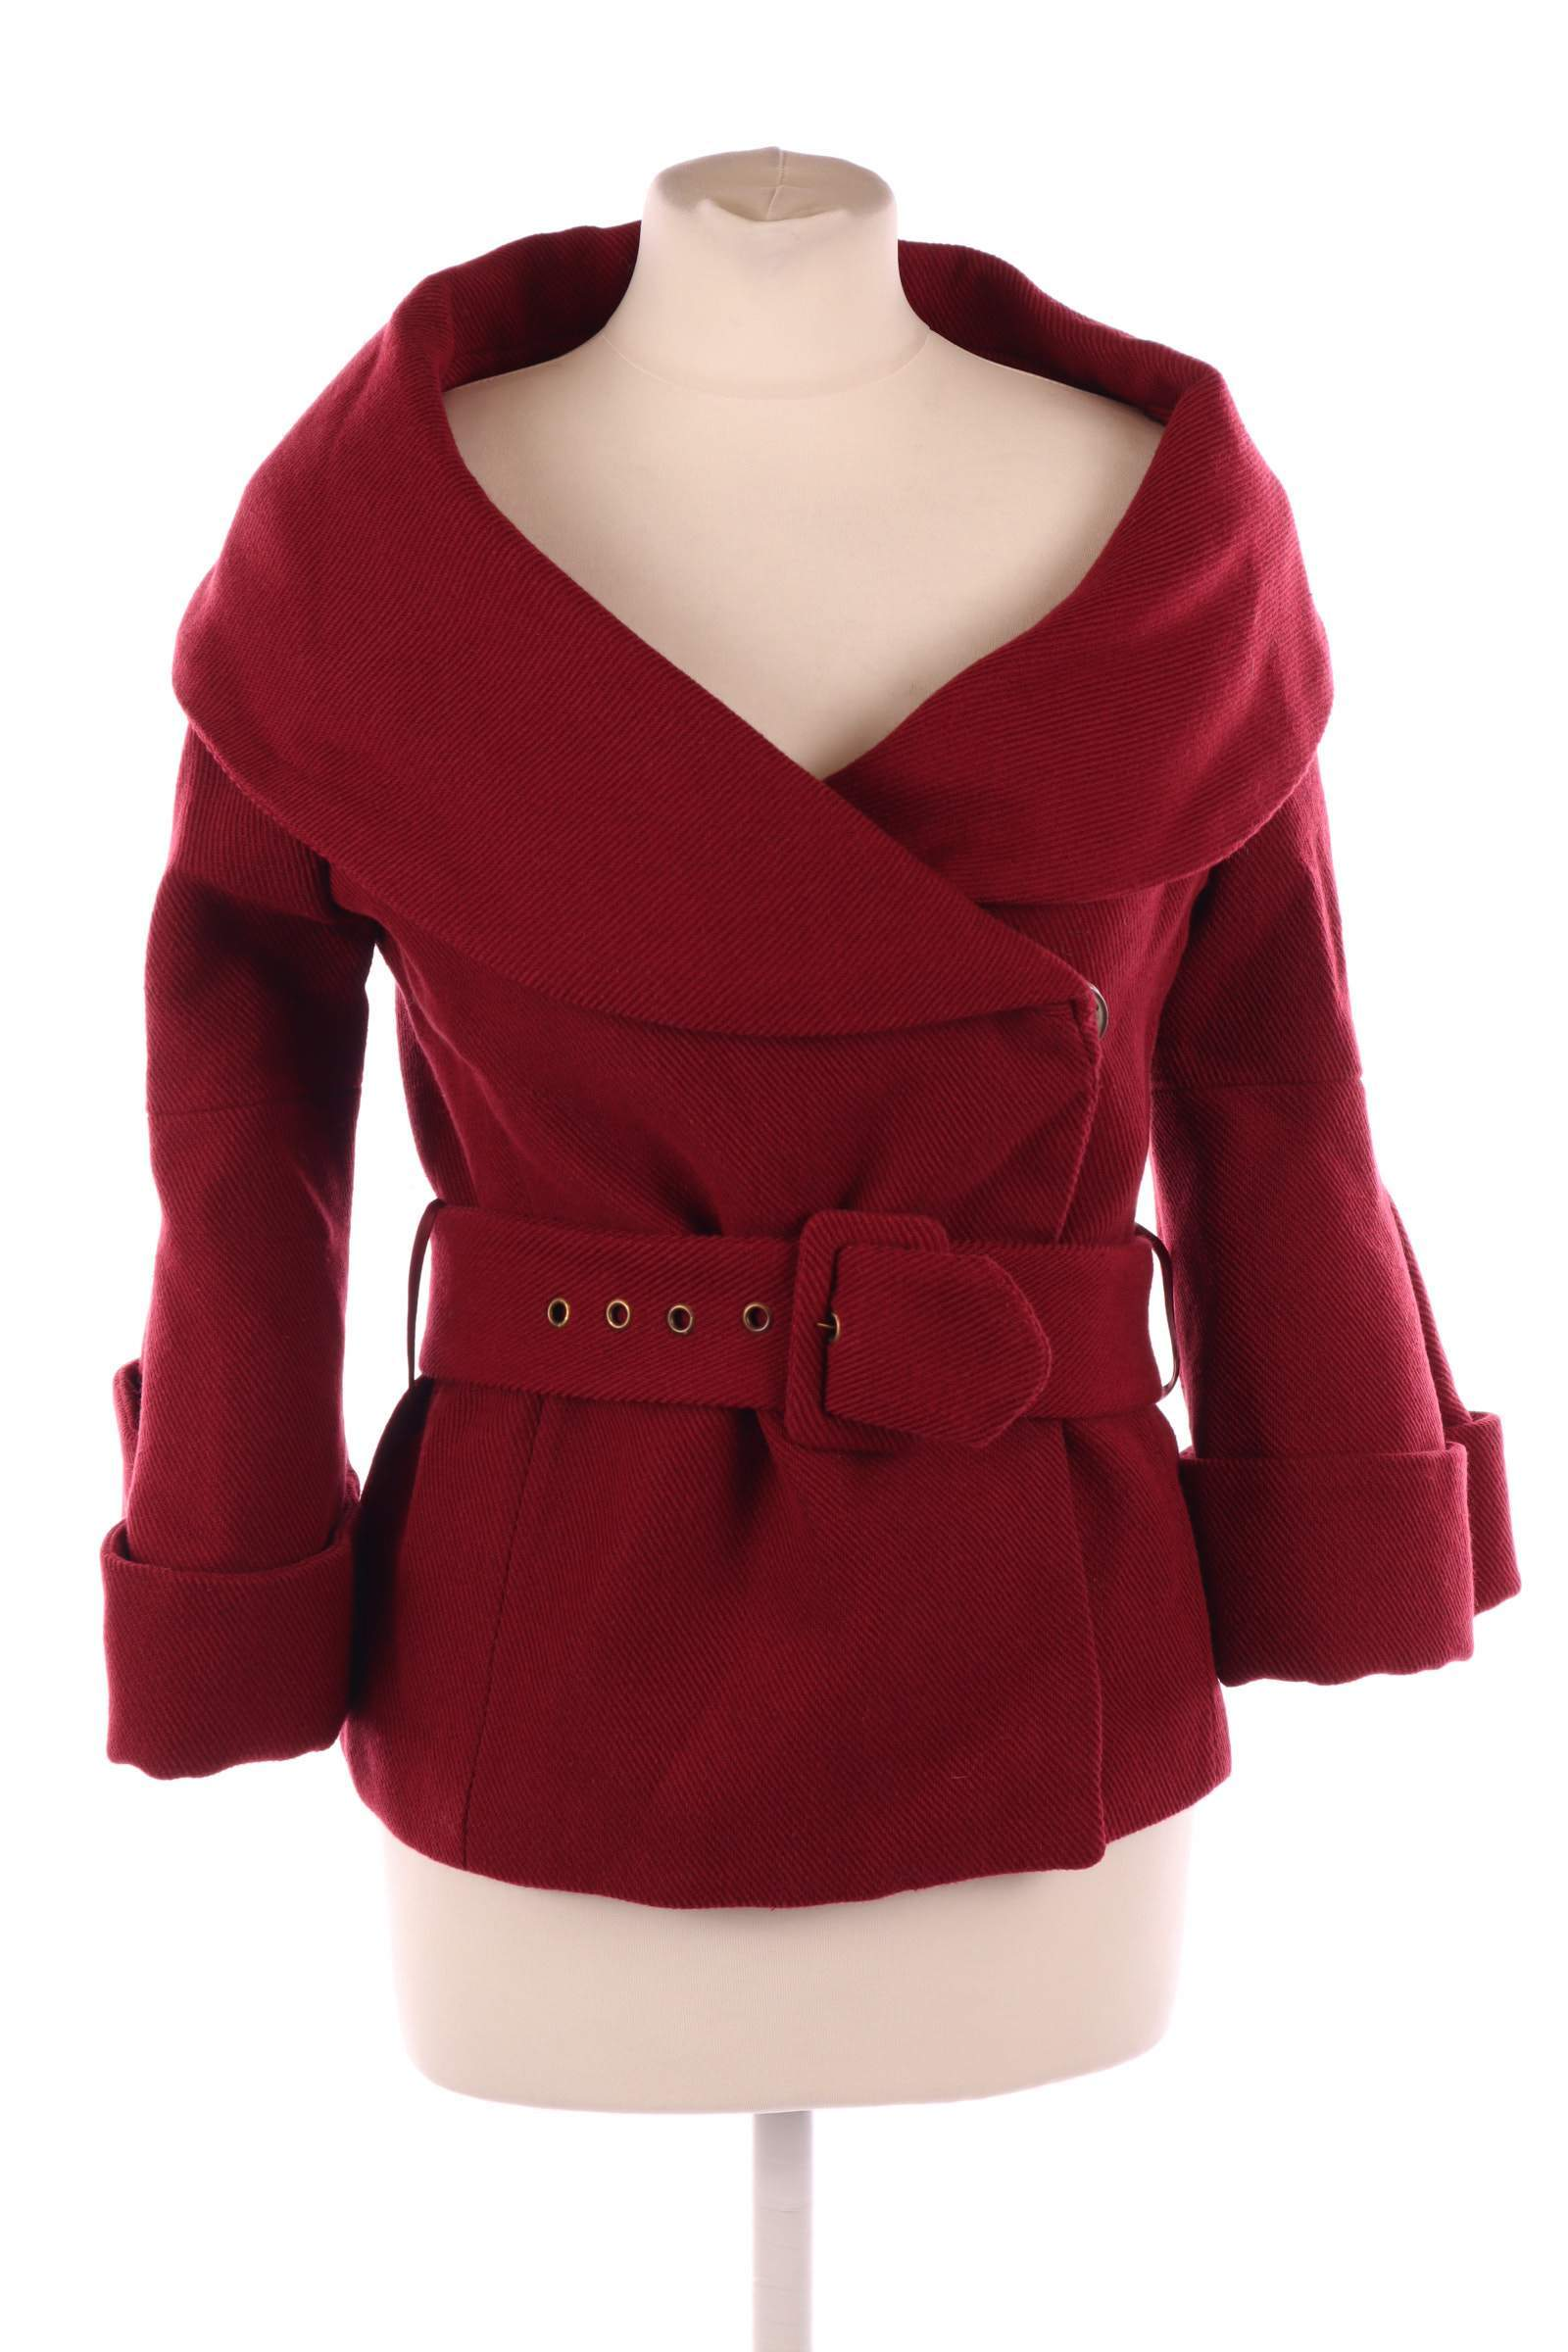 Phard Red Coat - upty.store